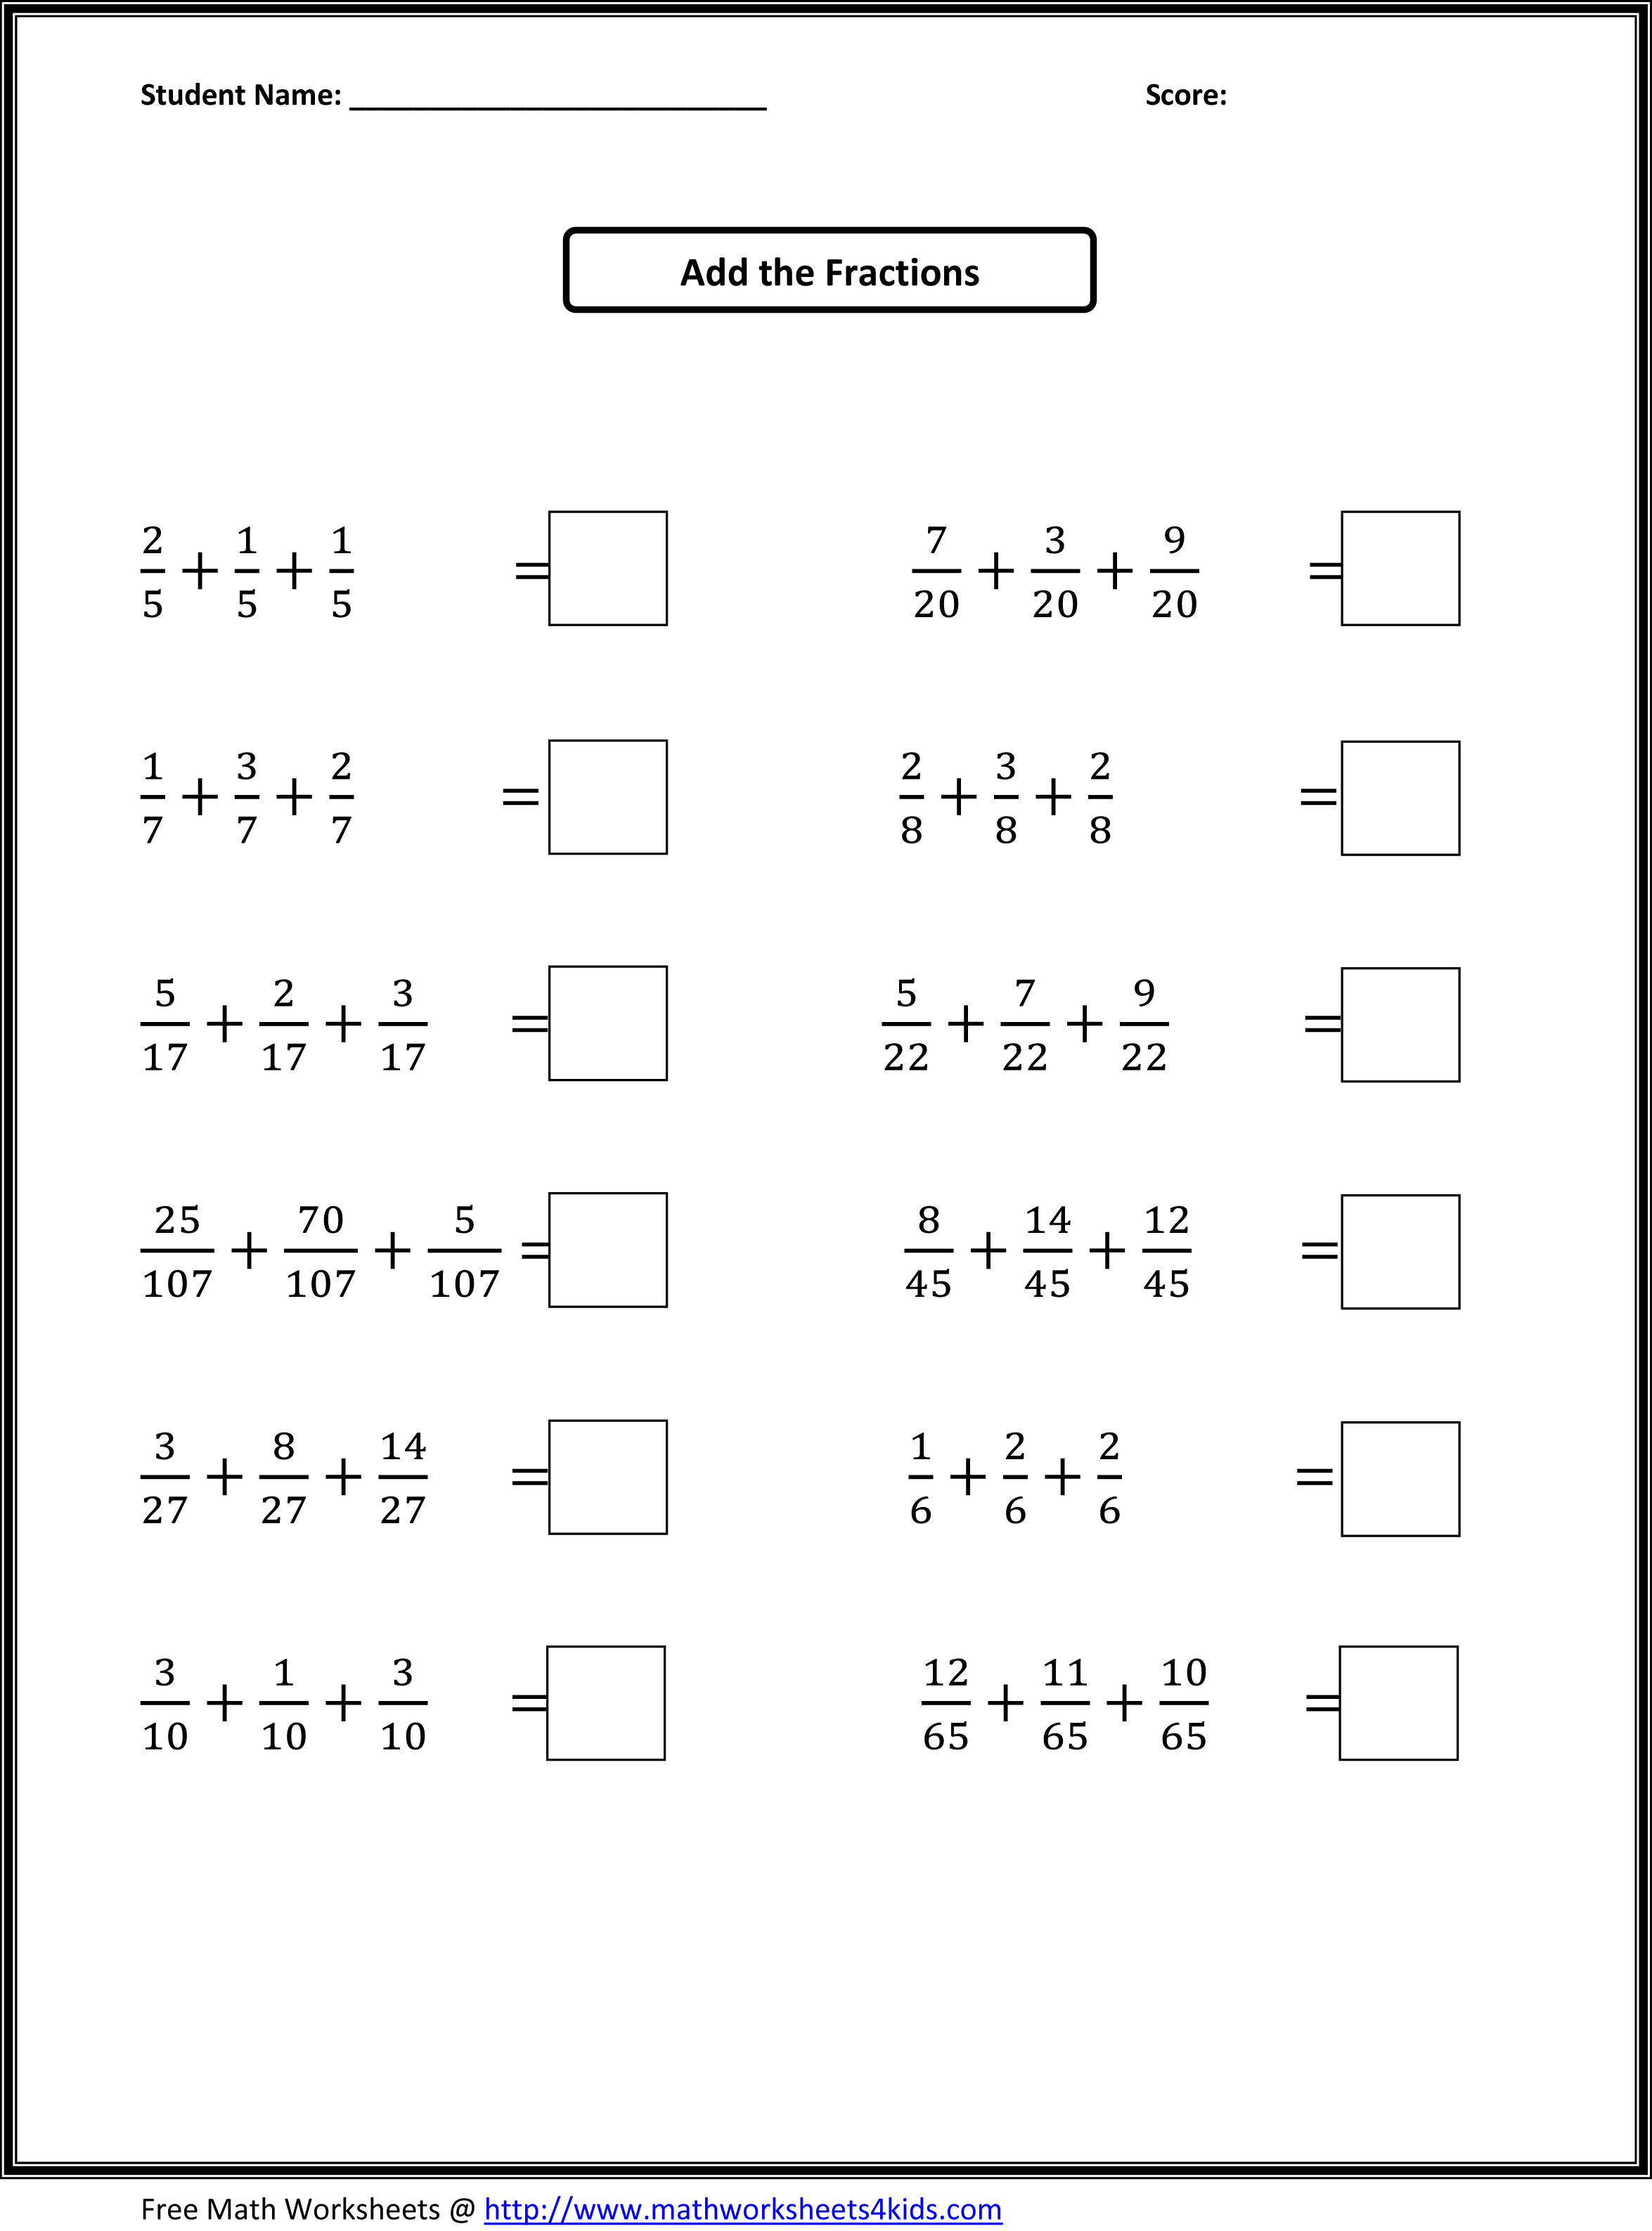 Fraction Worksheets 4th Grade – Basic Math Fractions Worksheets